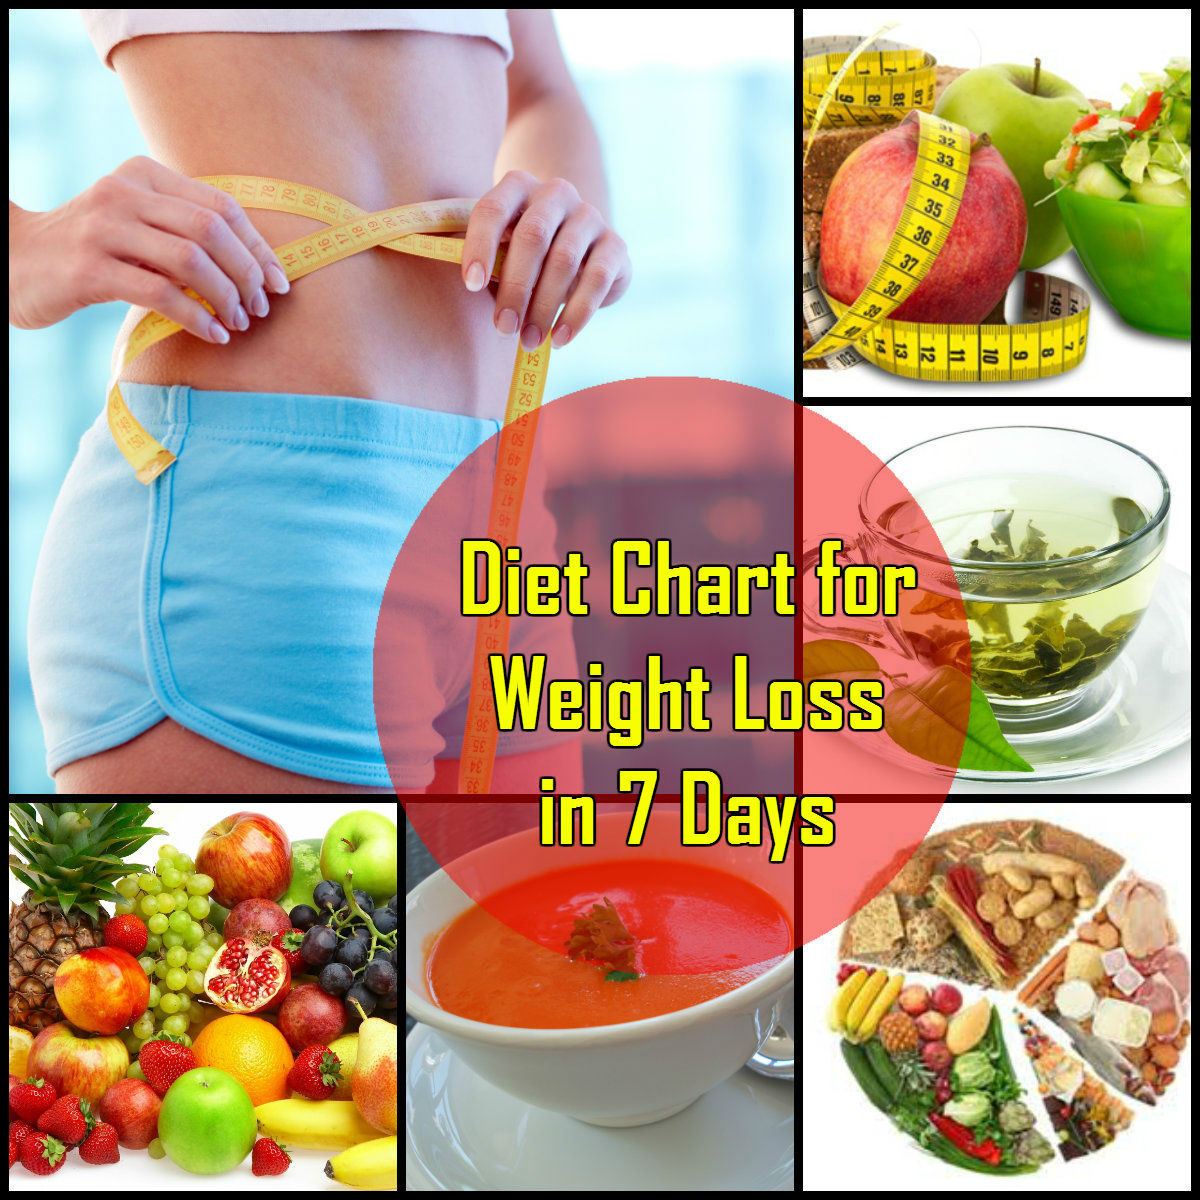 Diet-Chart-for-Weight-Loss-in-7-Days-in-Hindi.jpg